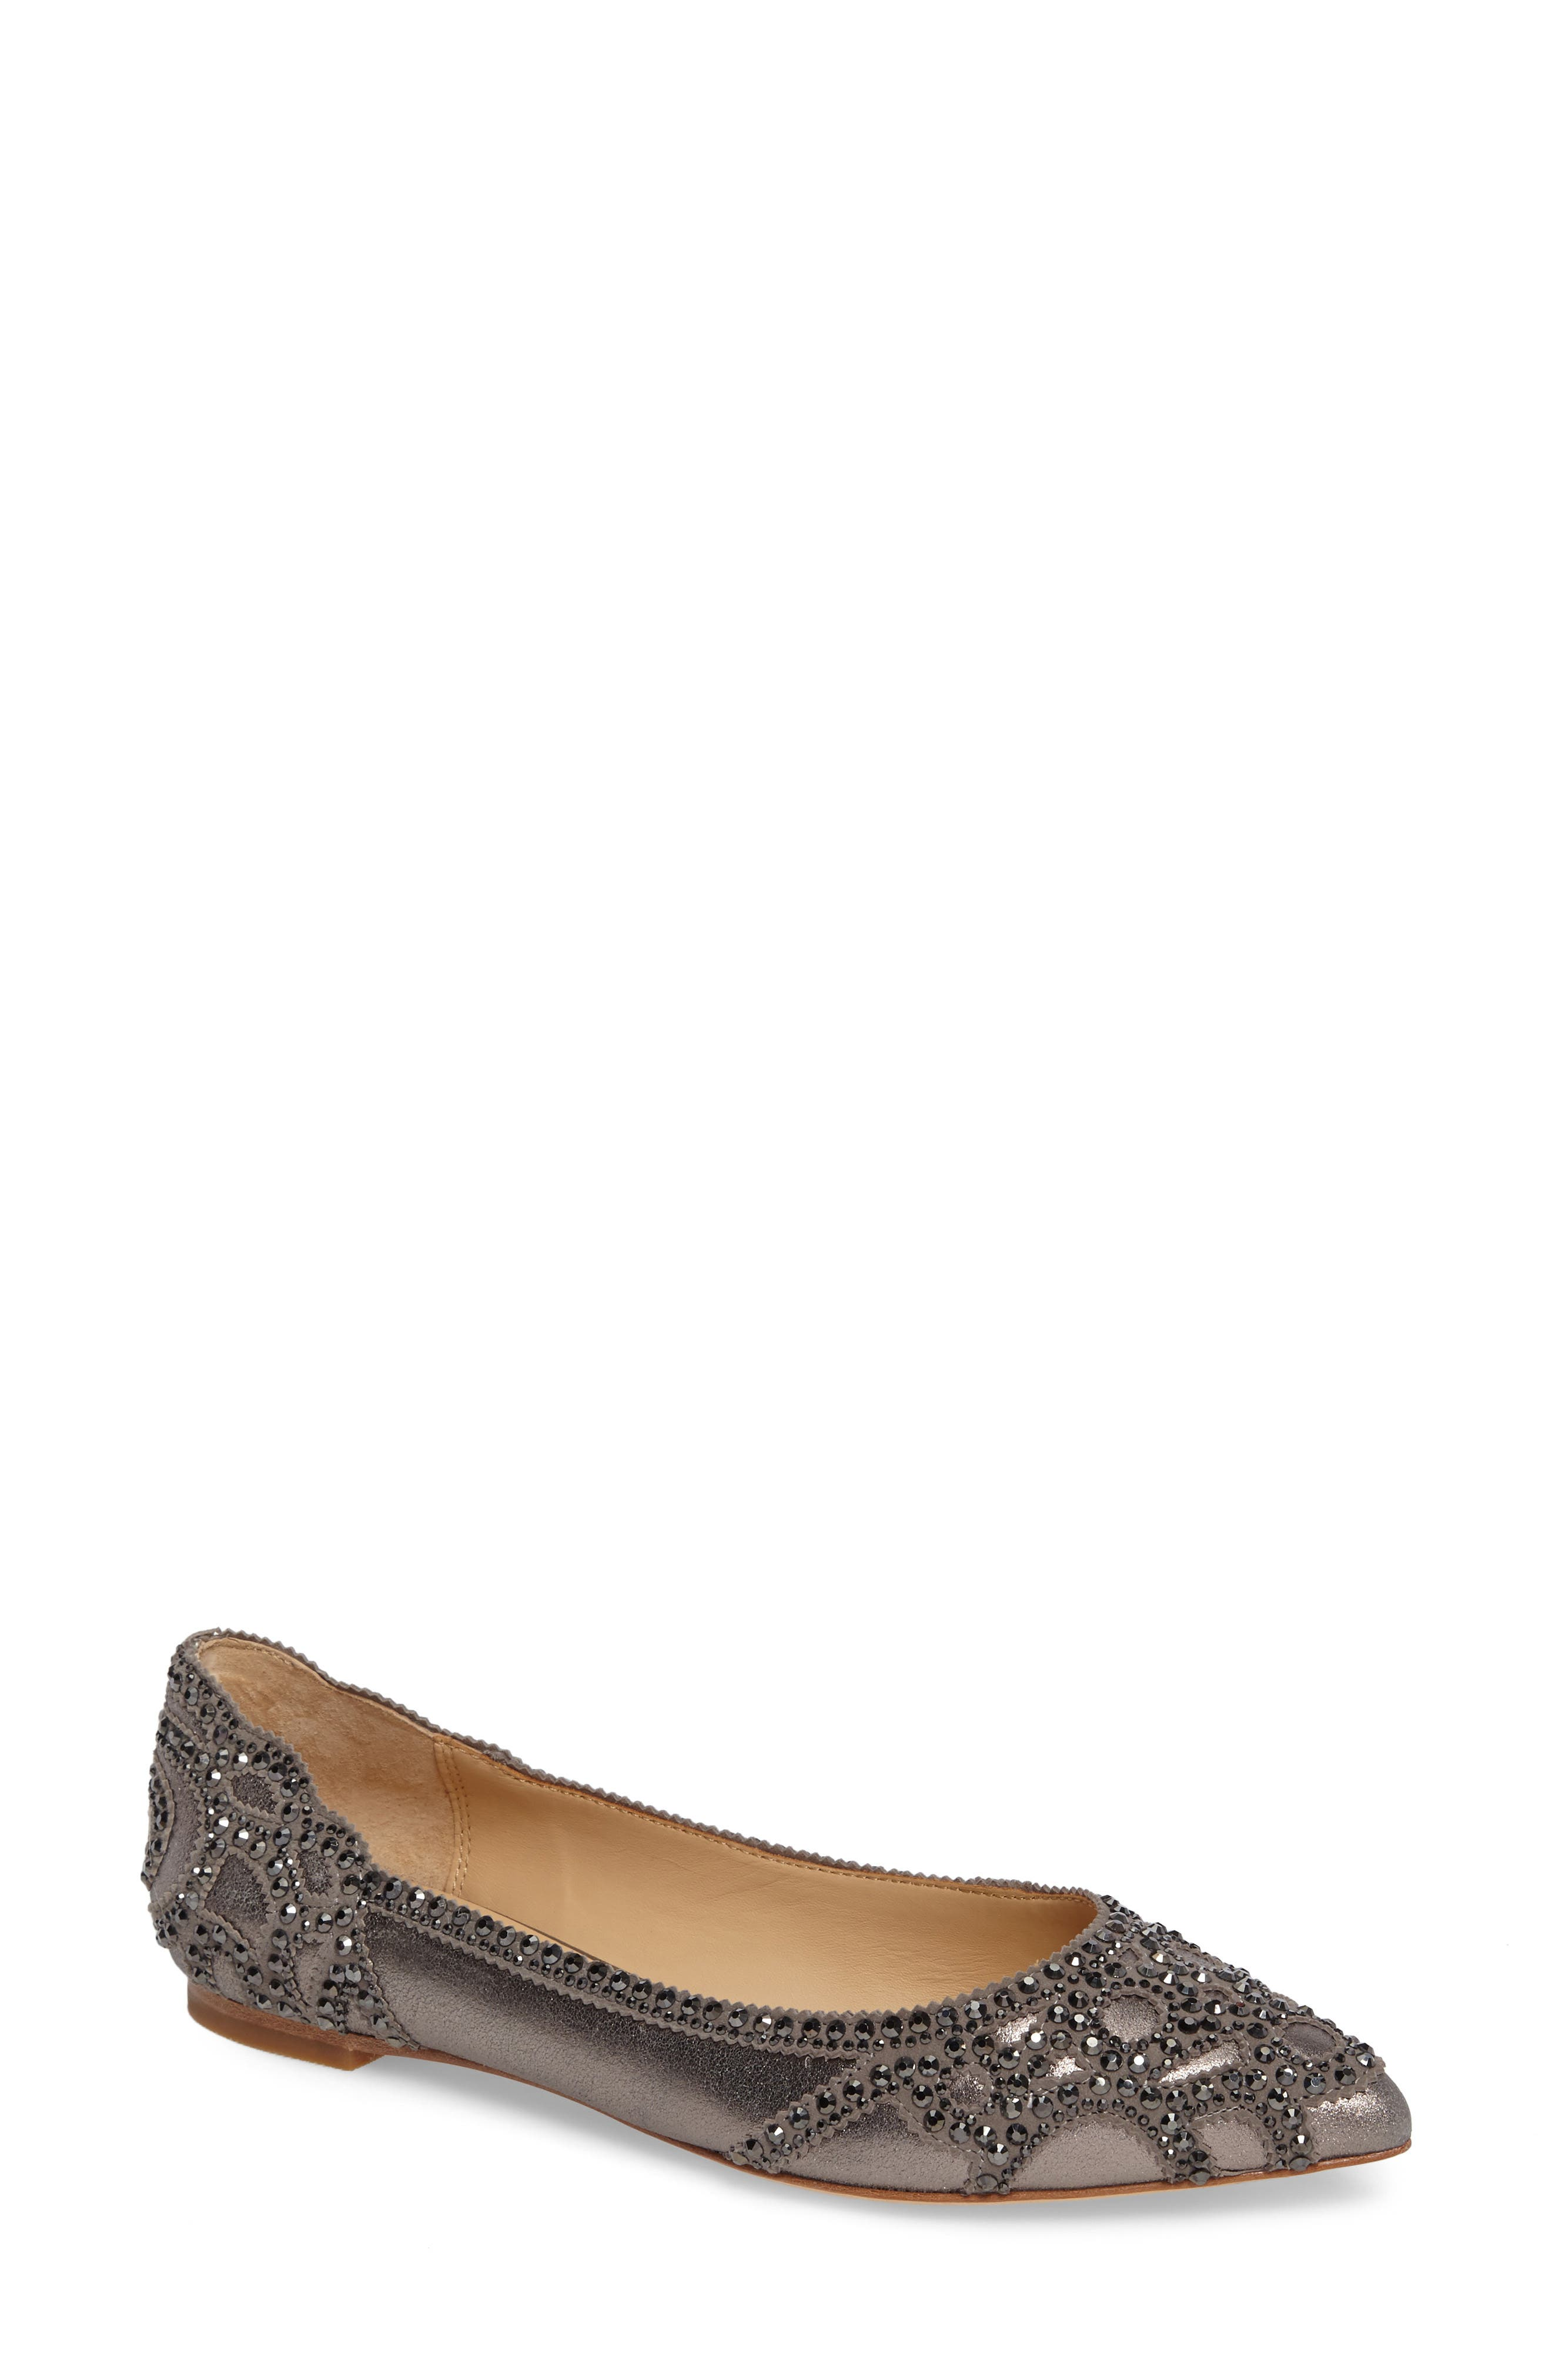 Gigi Crystal Pointy Toe Flat,                         Main,                         color,